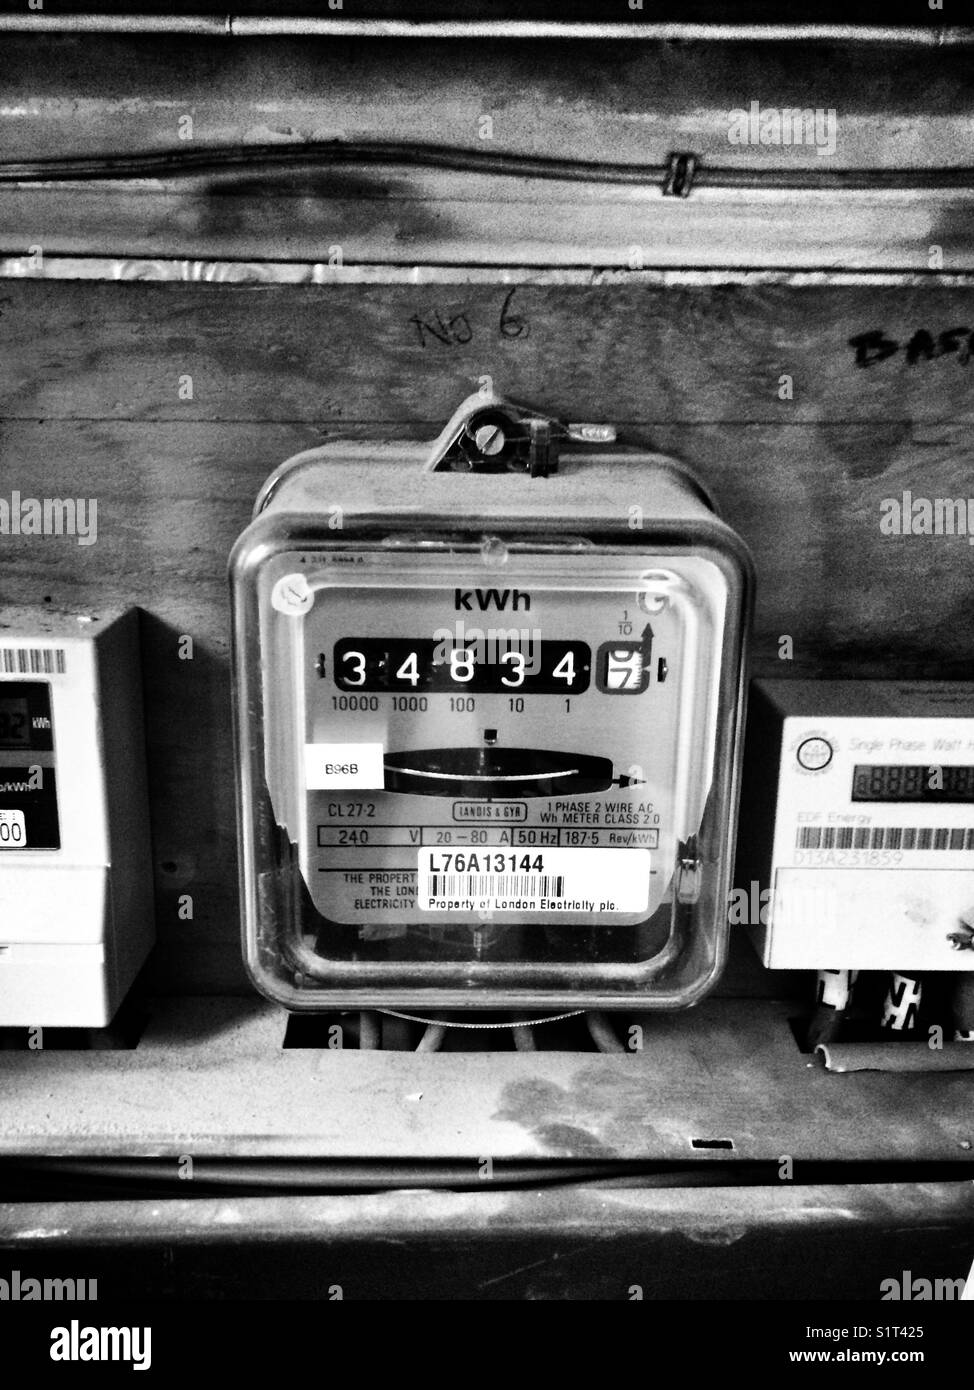 Electricity Meter Black and White Stock Photos & Images - Alamy